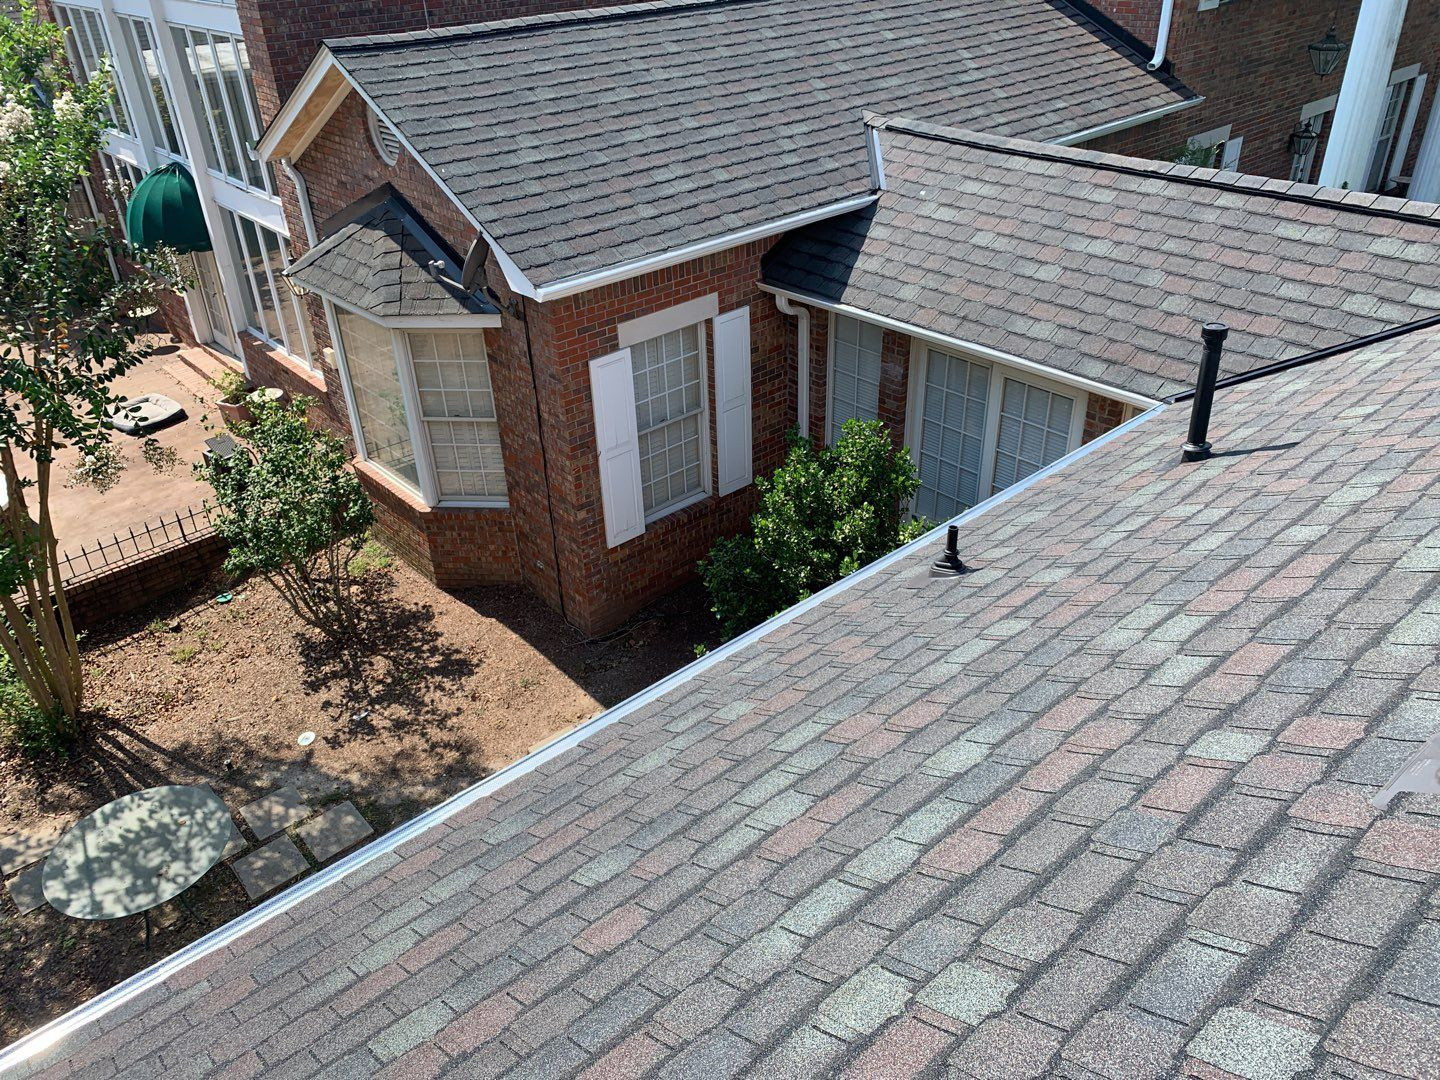 GAF Camelot II with Golden Plege Roofing Warranty in Florence, Alabama